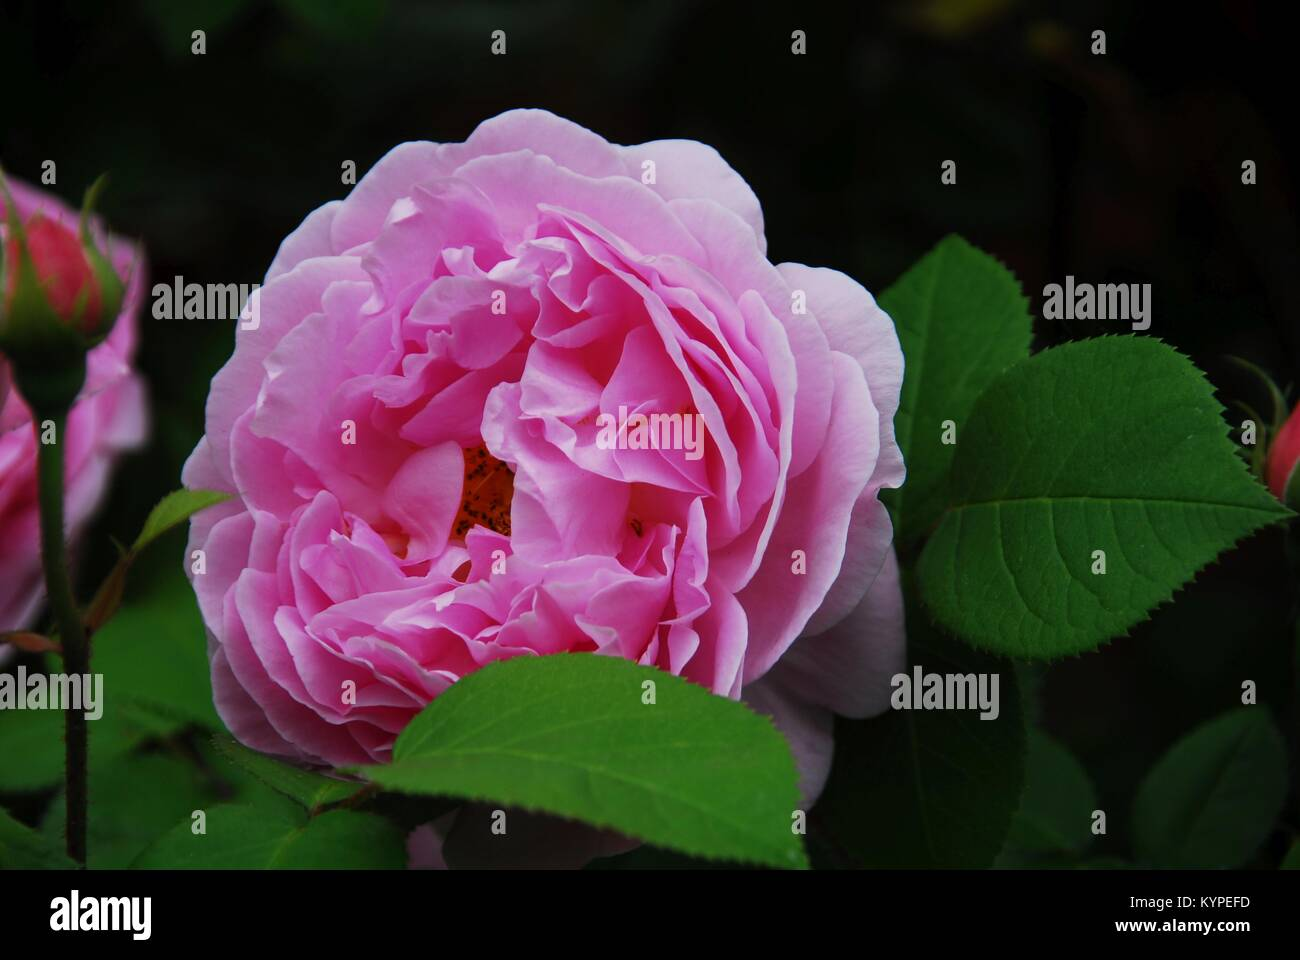 Delicate pink peony picked in own garden - Stock Image